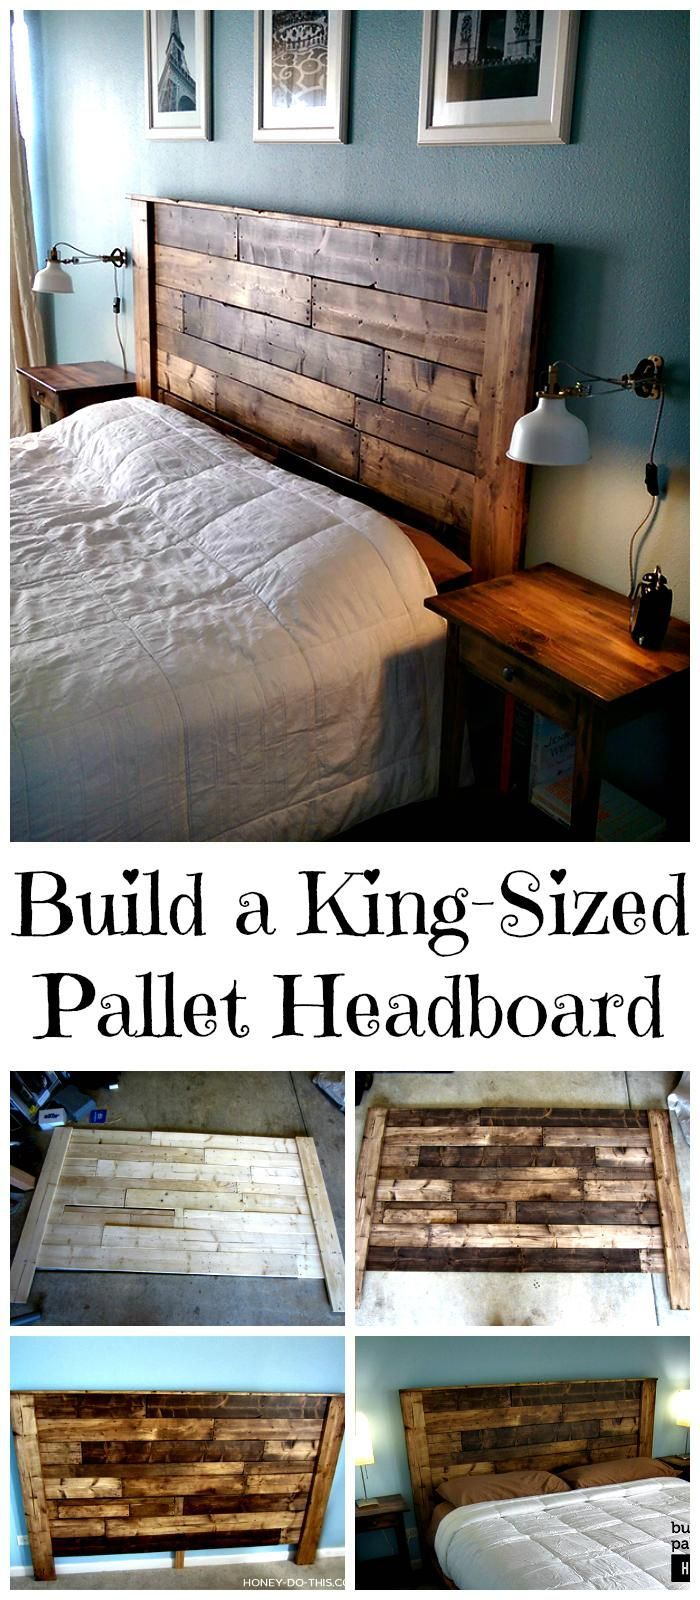 DIY King-Sized Pallet Headboard Tutorial - 150 Best DIY Pallet Projects and Pall...